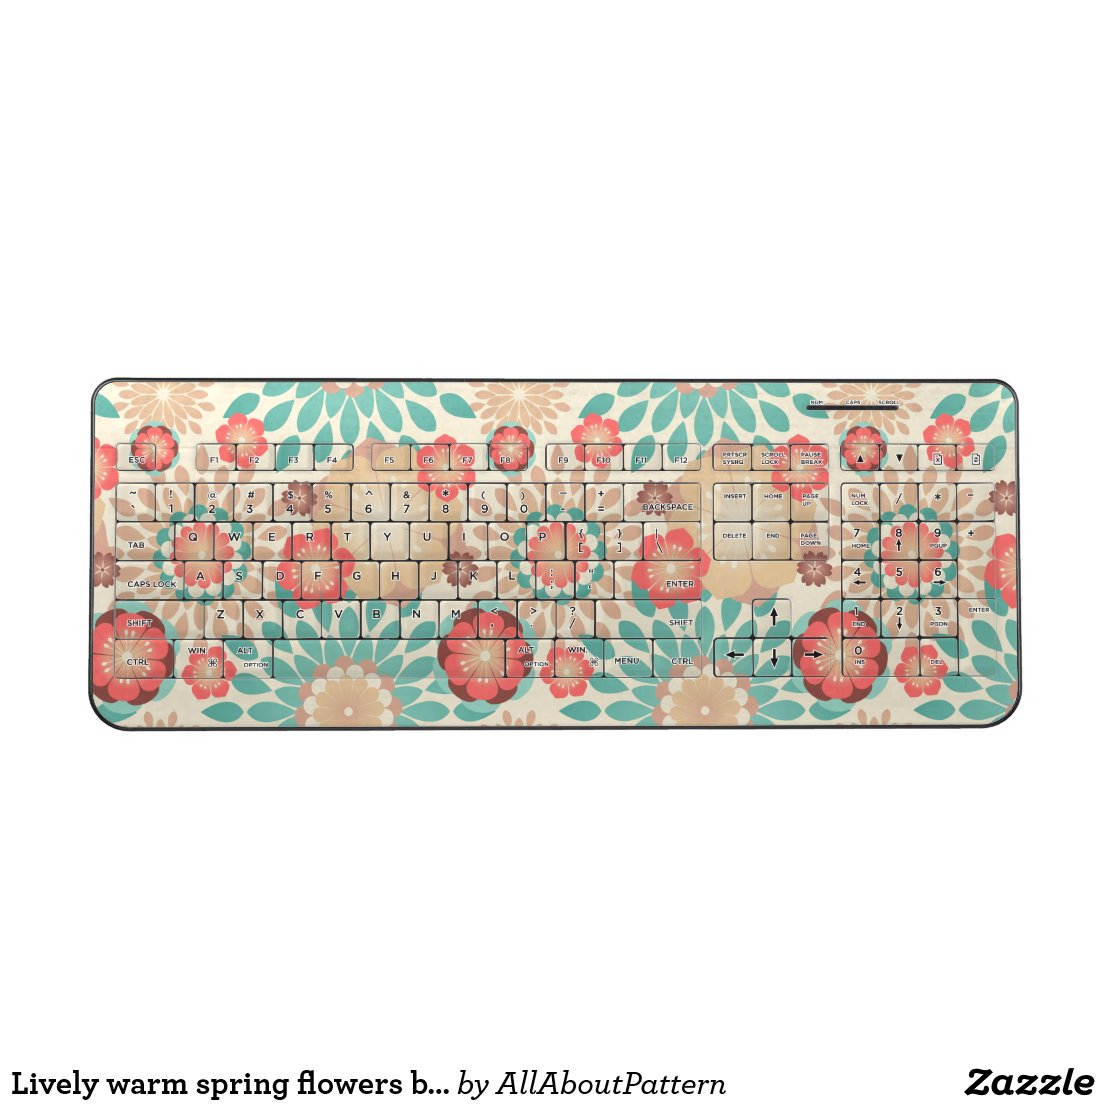 Lively warm spring flowers blooming pattern wireless keyboard